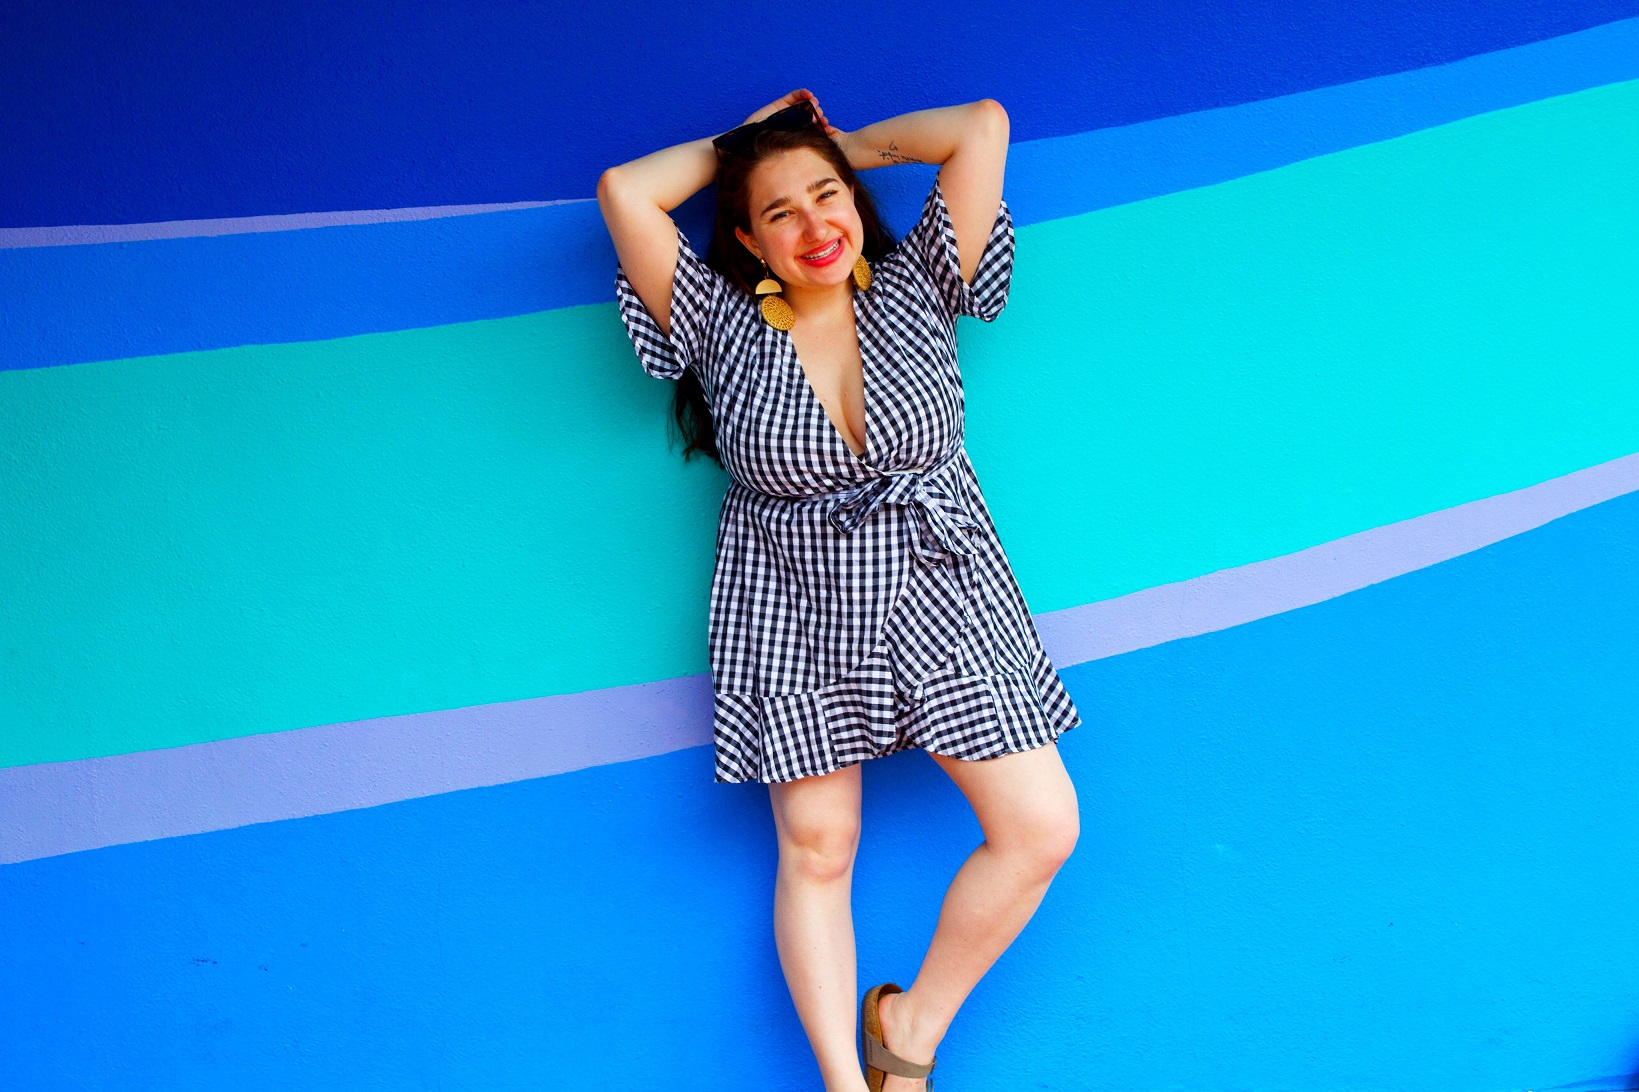 Pretty walls and pineapples. Really, that's exactly what @pineapplesandprettywalls is